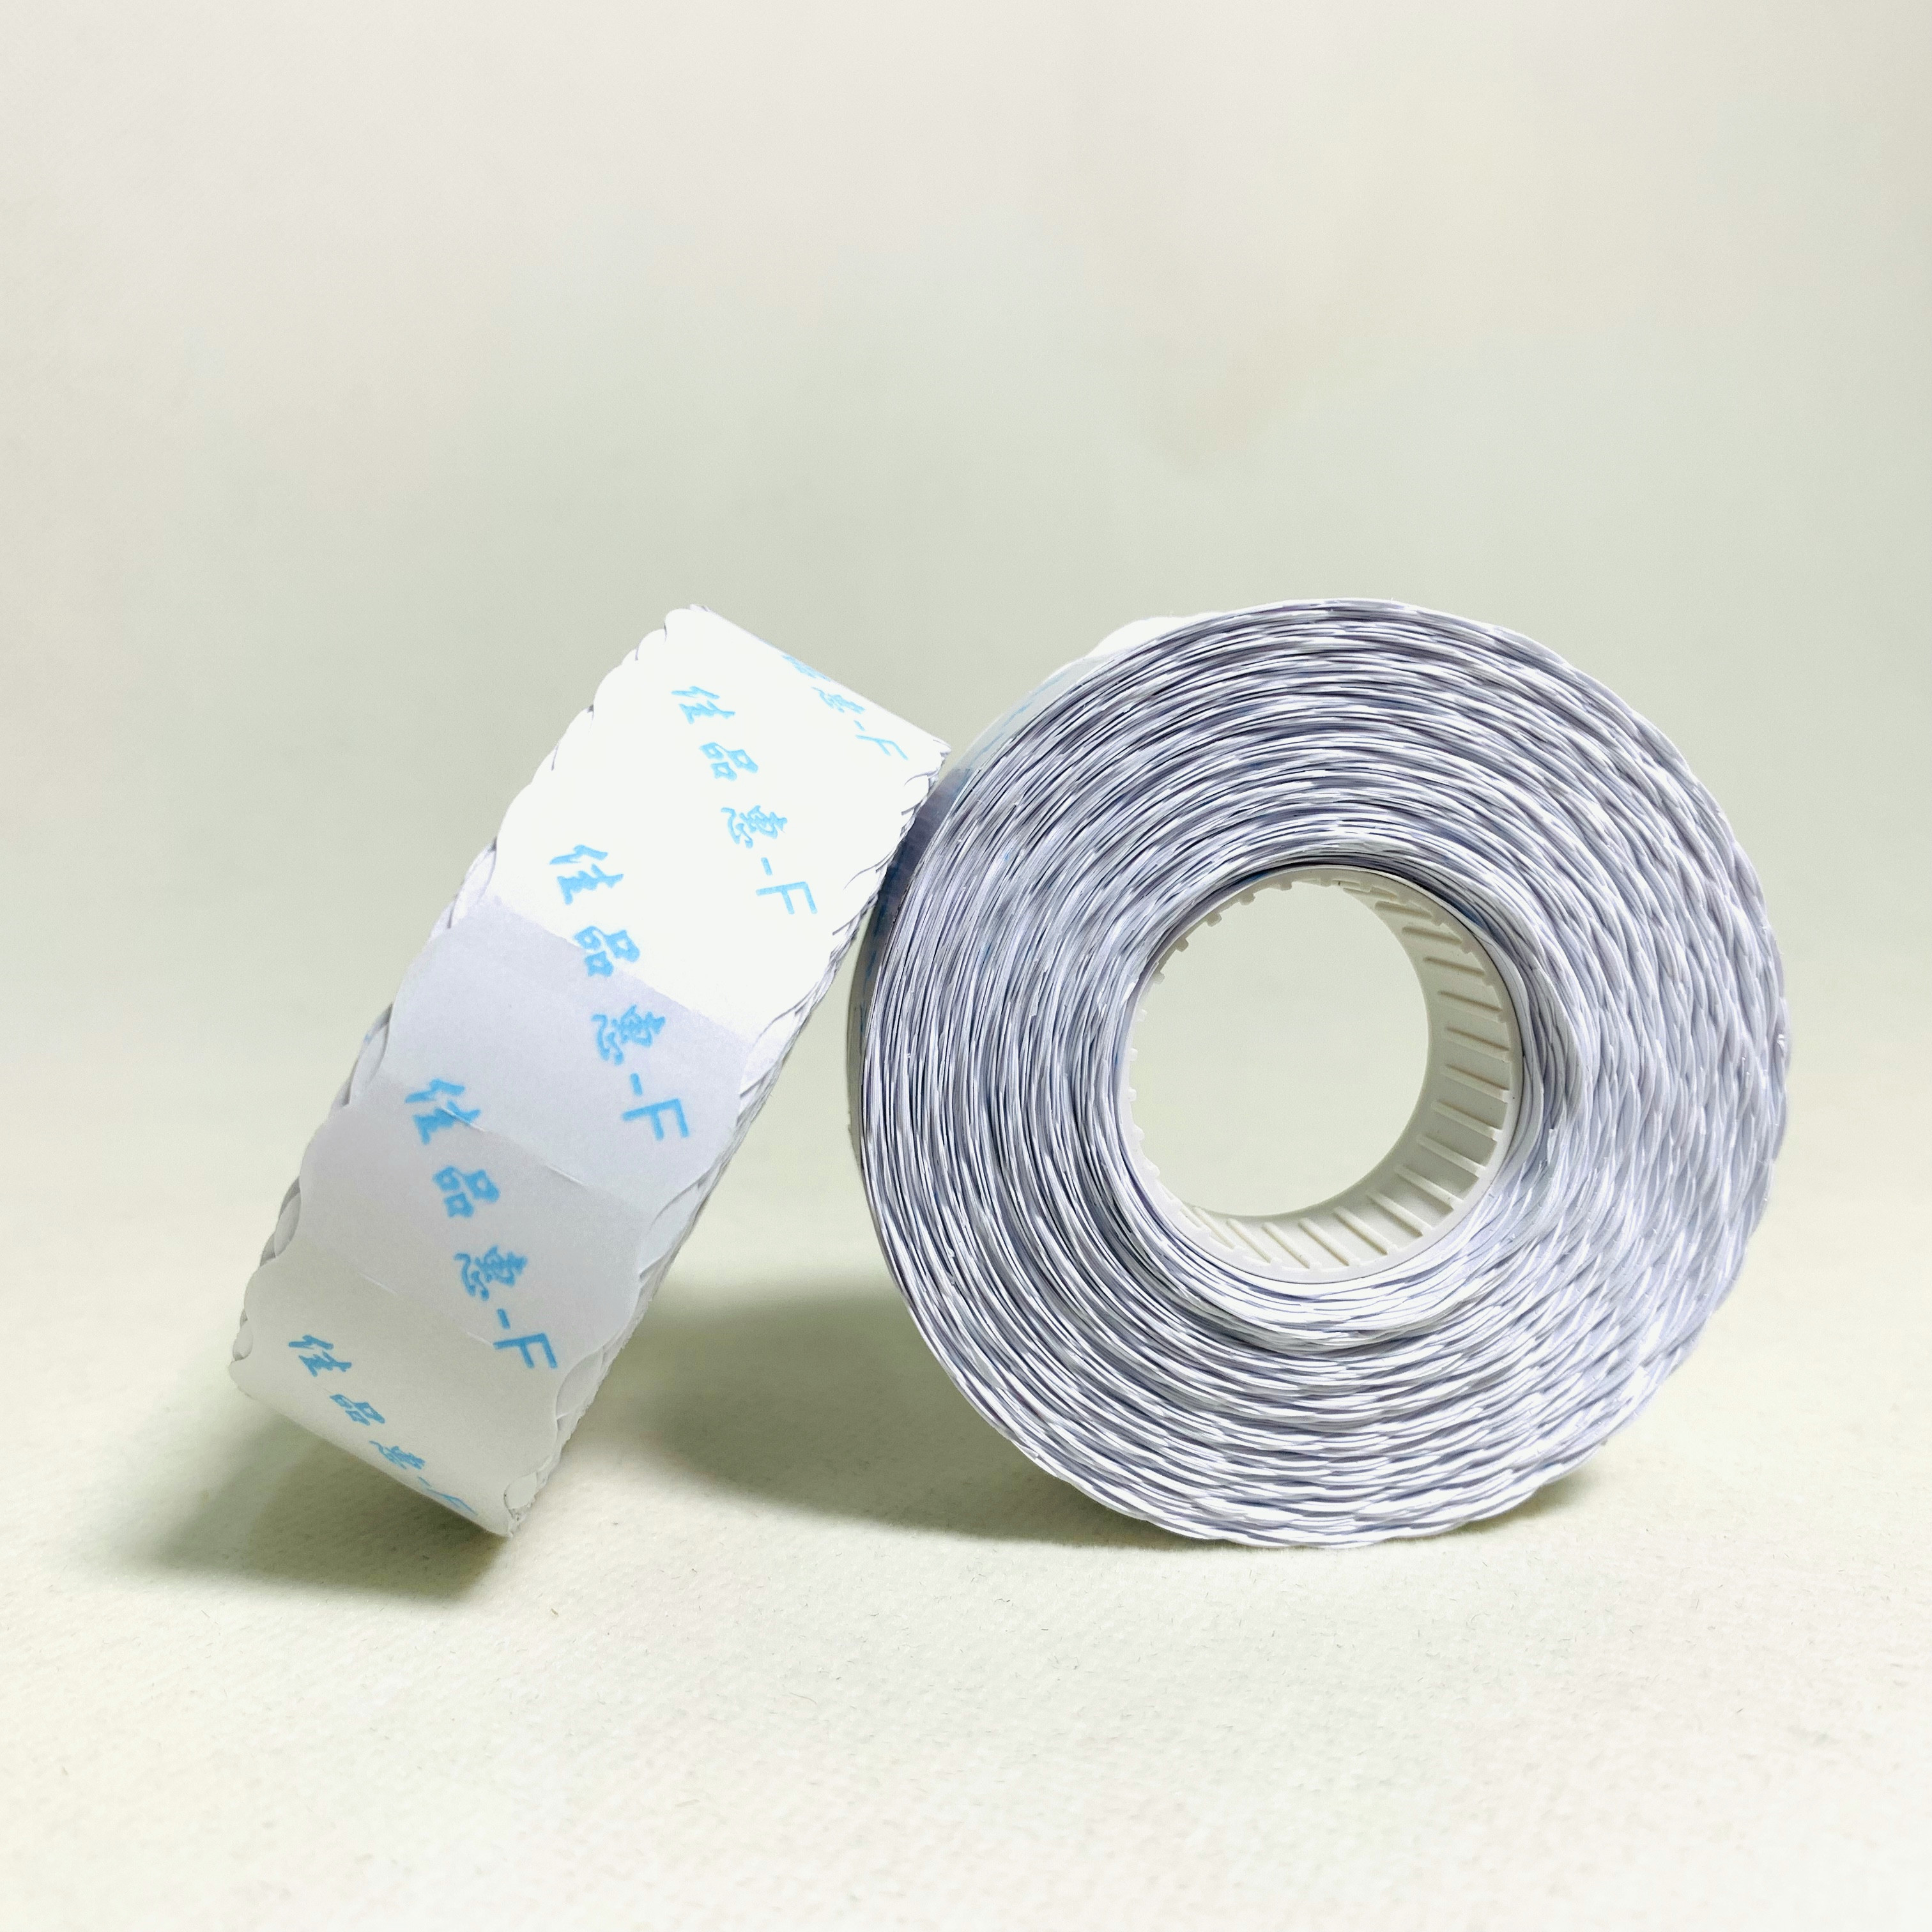 High Quality 42Rolls Labels Label Gun Labels Germany METO And Italy OPEN Labelling Gun Size 22x12mm 3 Rolls